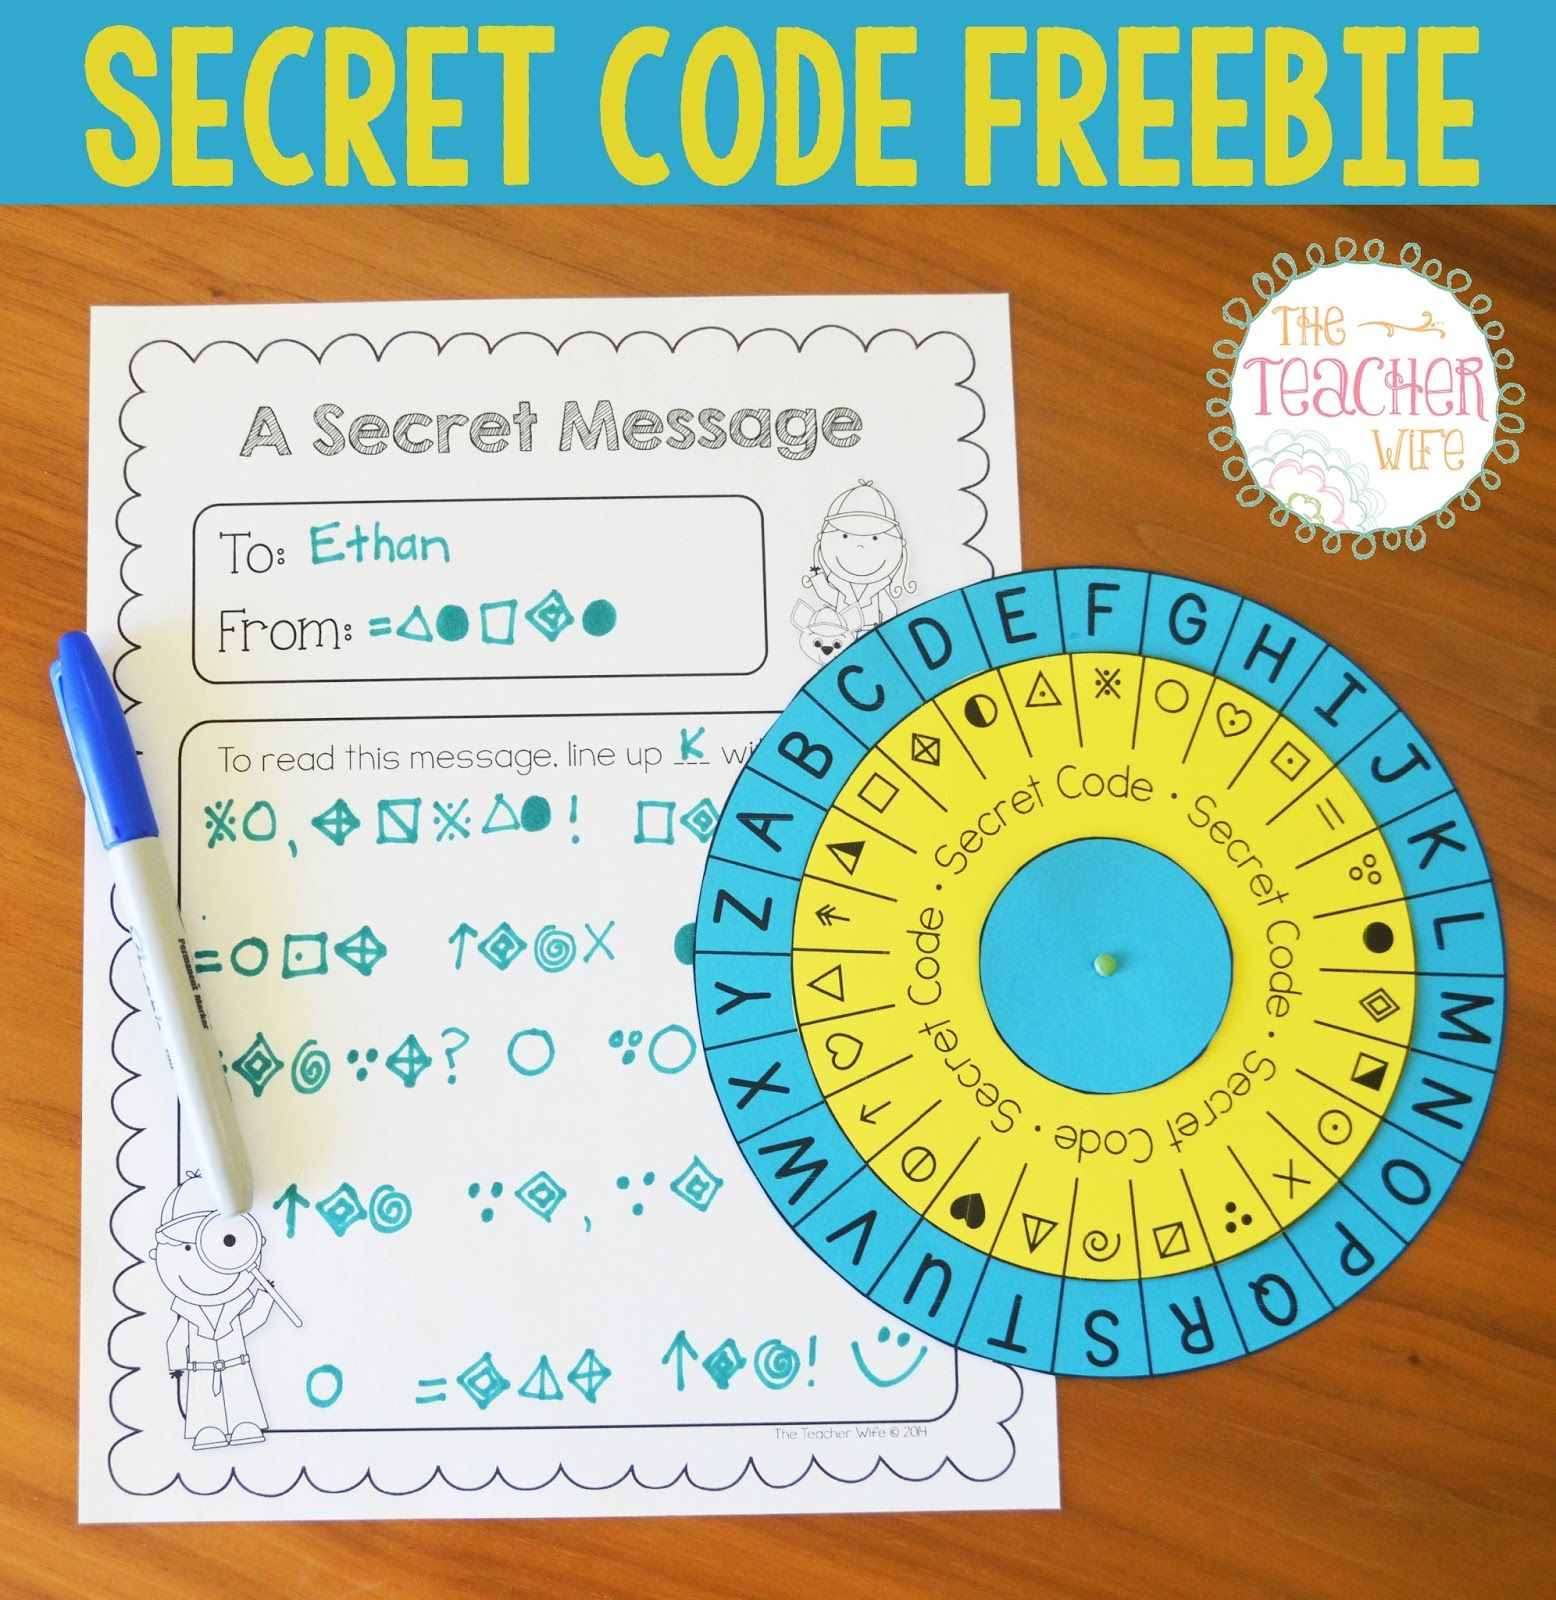 Secret Code Freebie The Teacher Wife